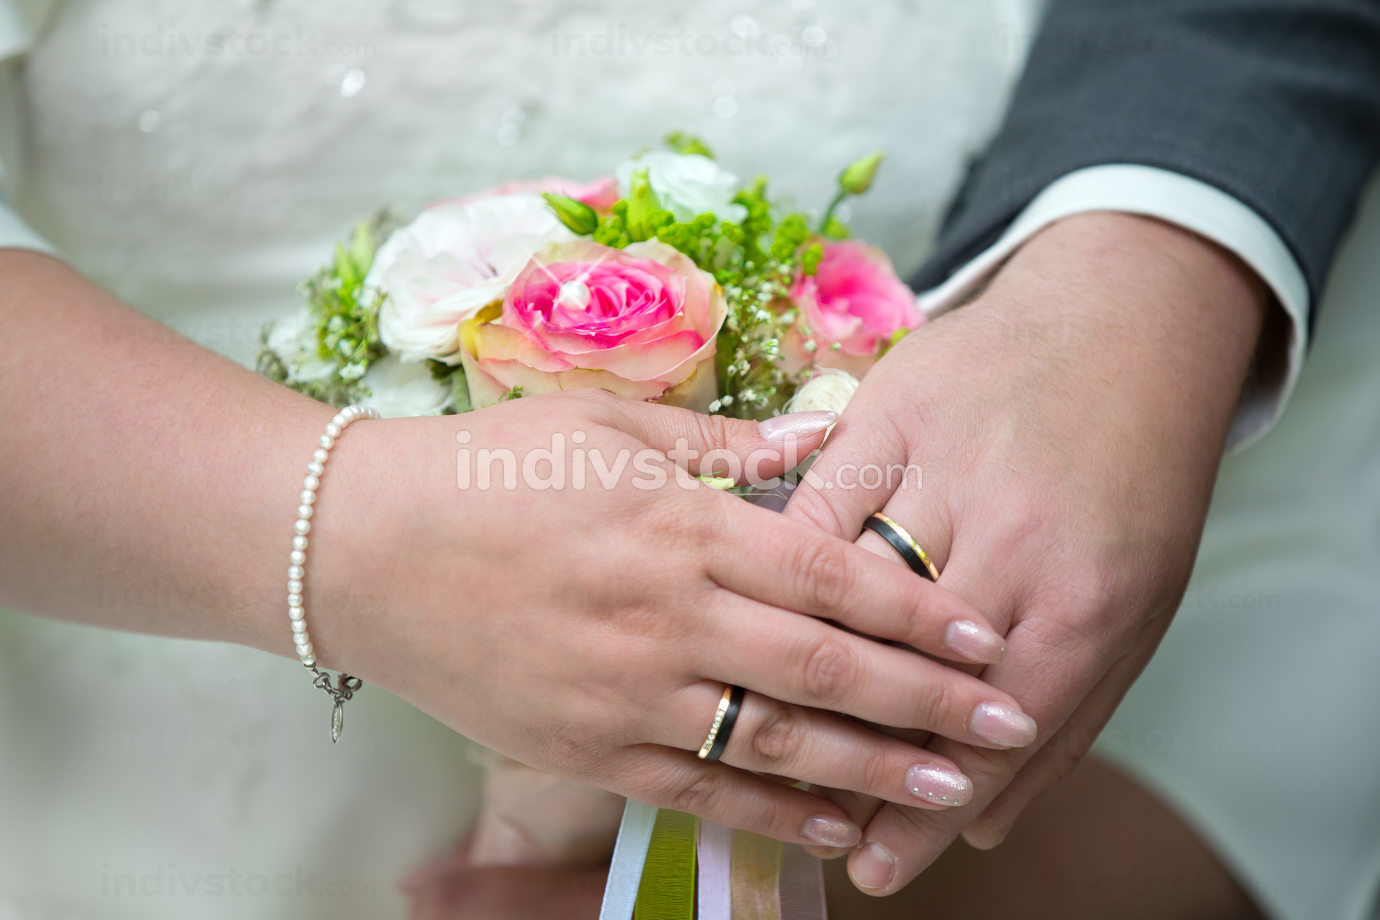 The hands of a newlyweds with the wedding rings